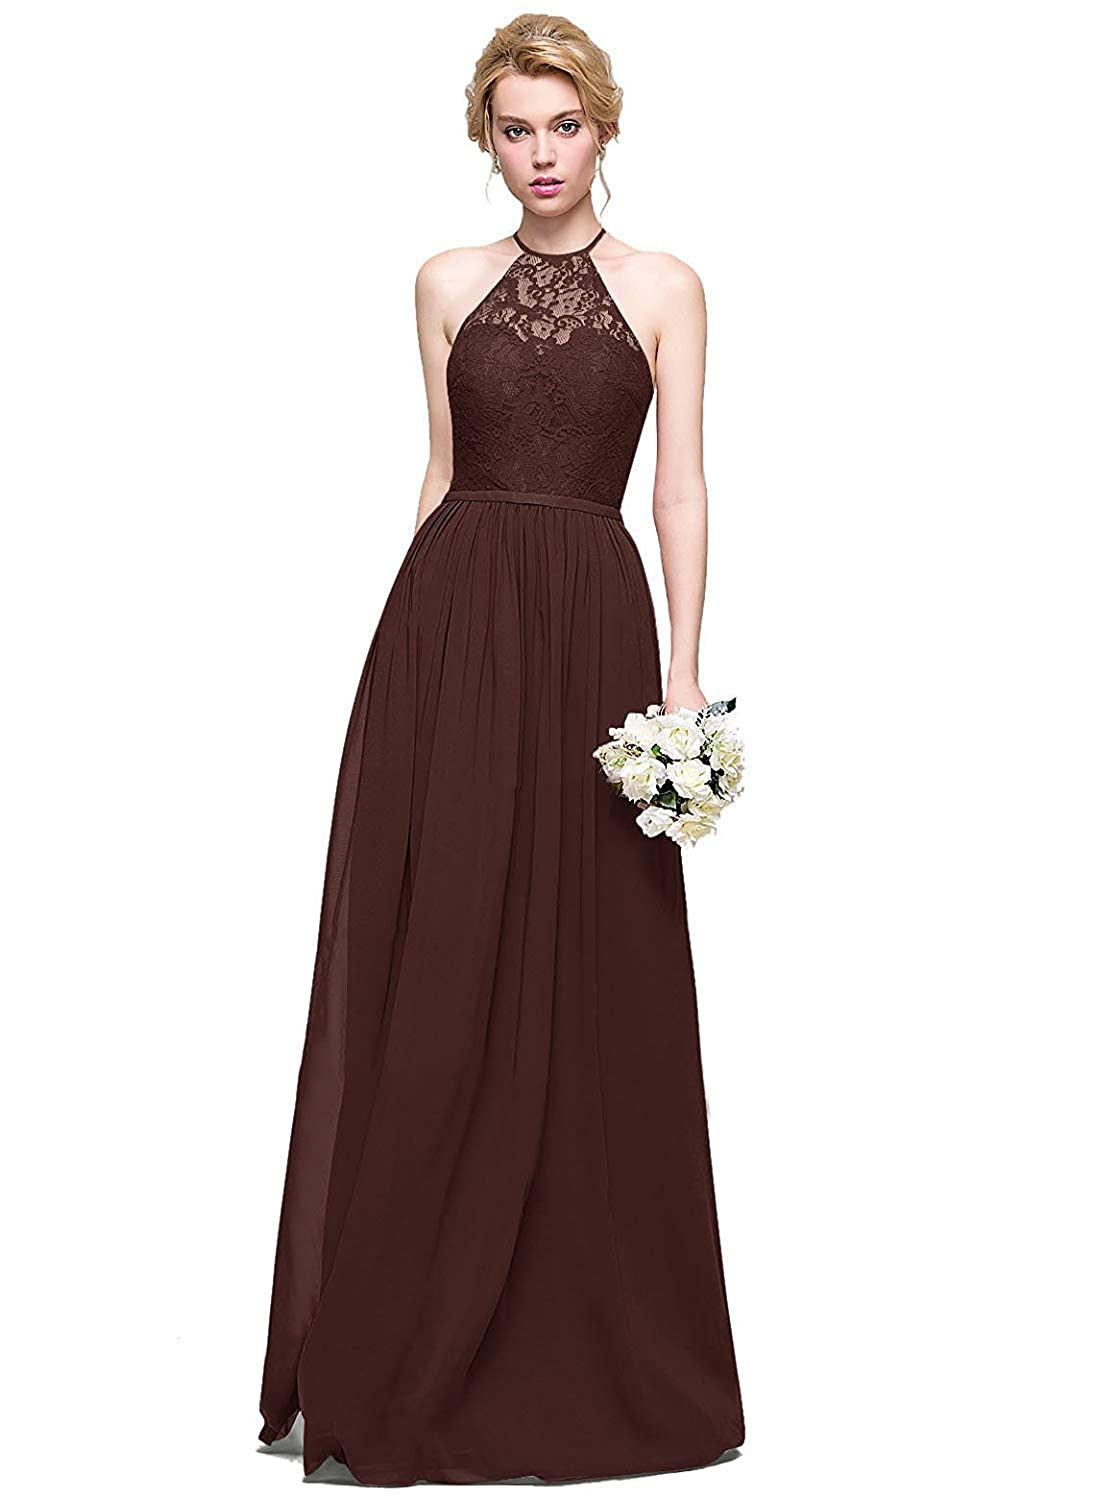 Chocolate Halter Lace Sweetheart Neck Bridesmaid Dresses Long Prom Evening Gown